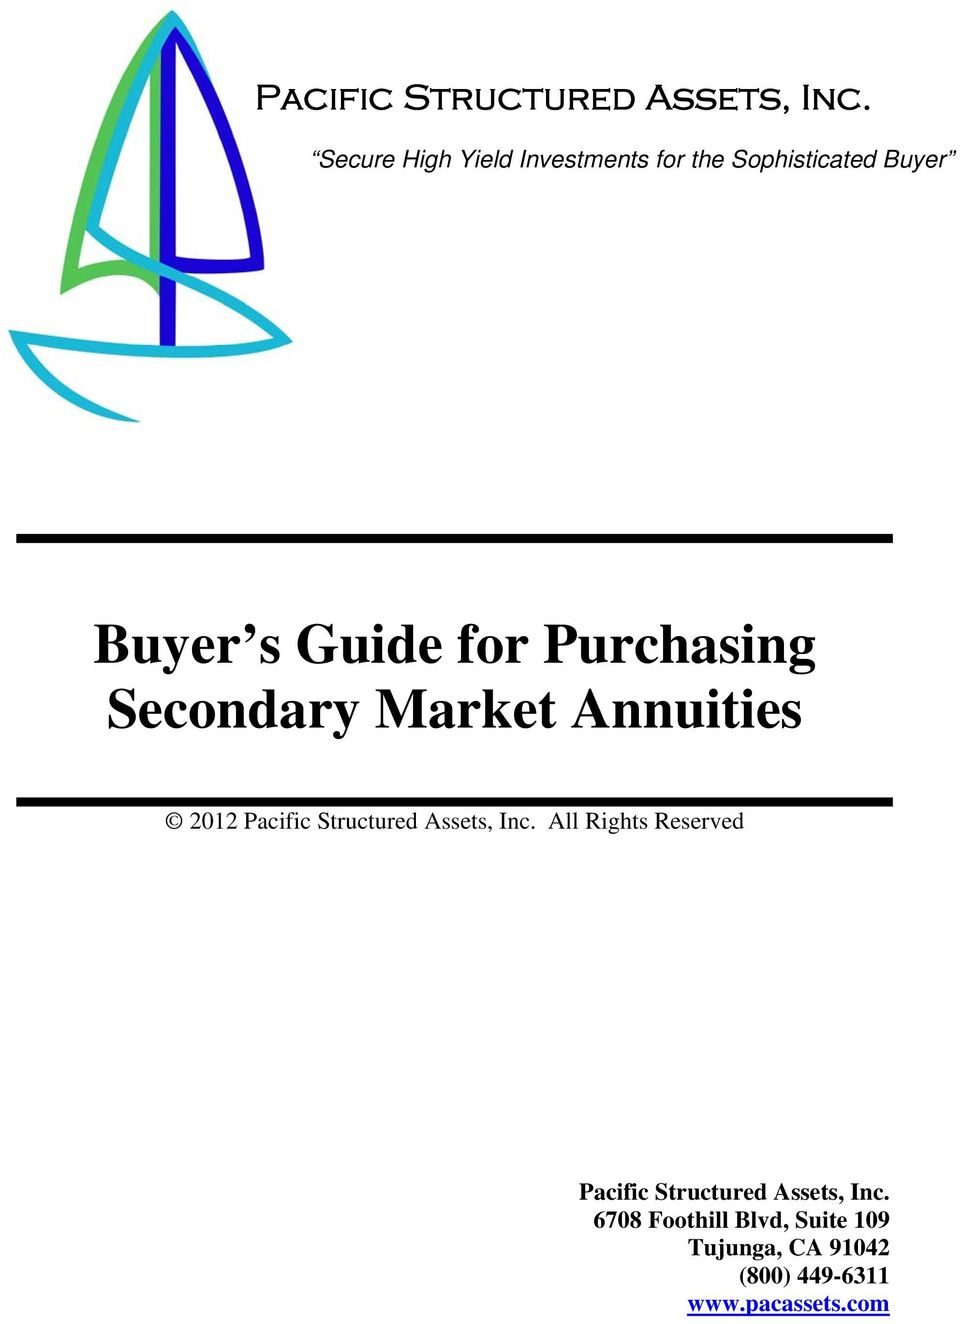 Purchasing Secondary Market Annuities 2012  All Rights Reserved  6708 Foothill